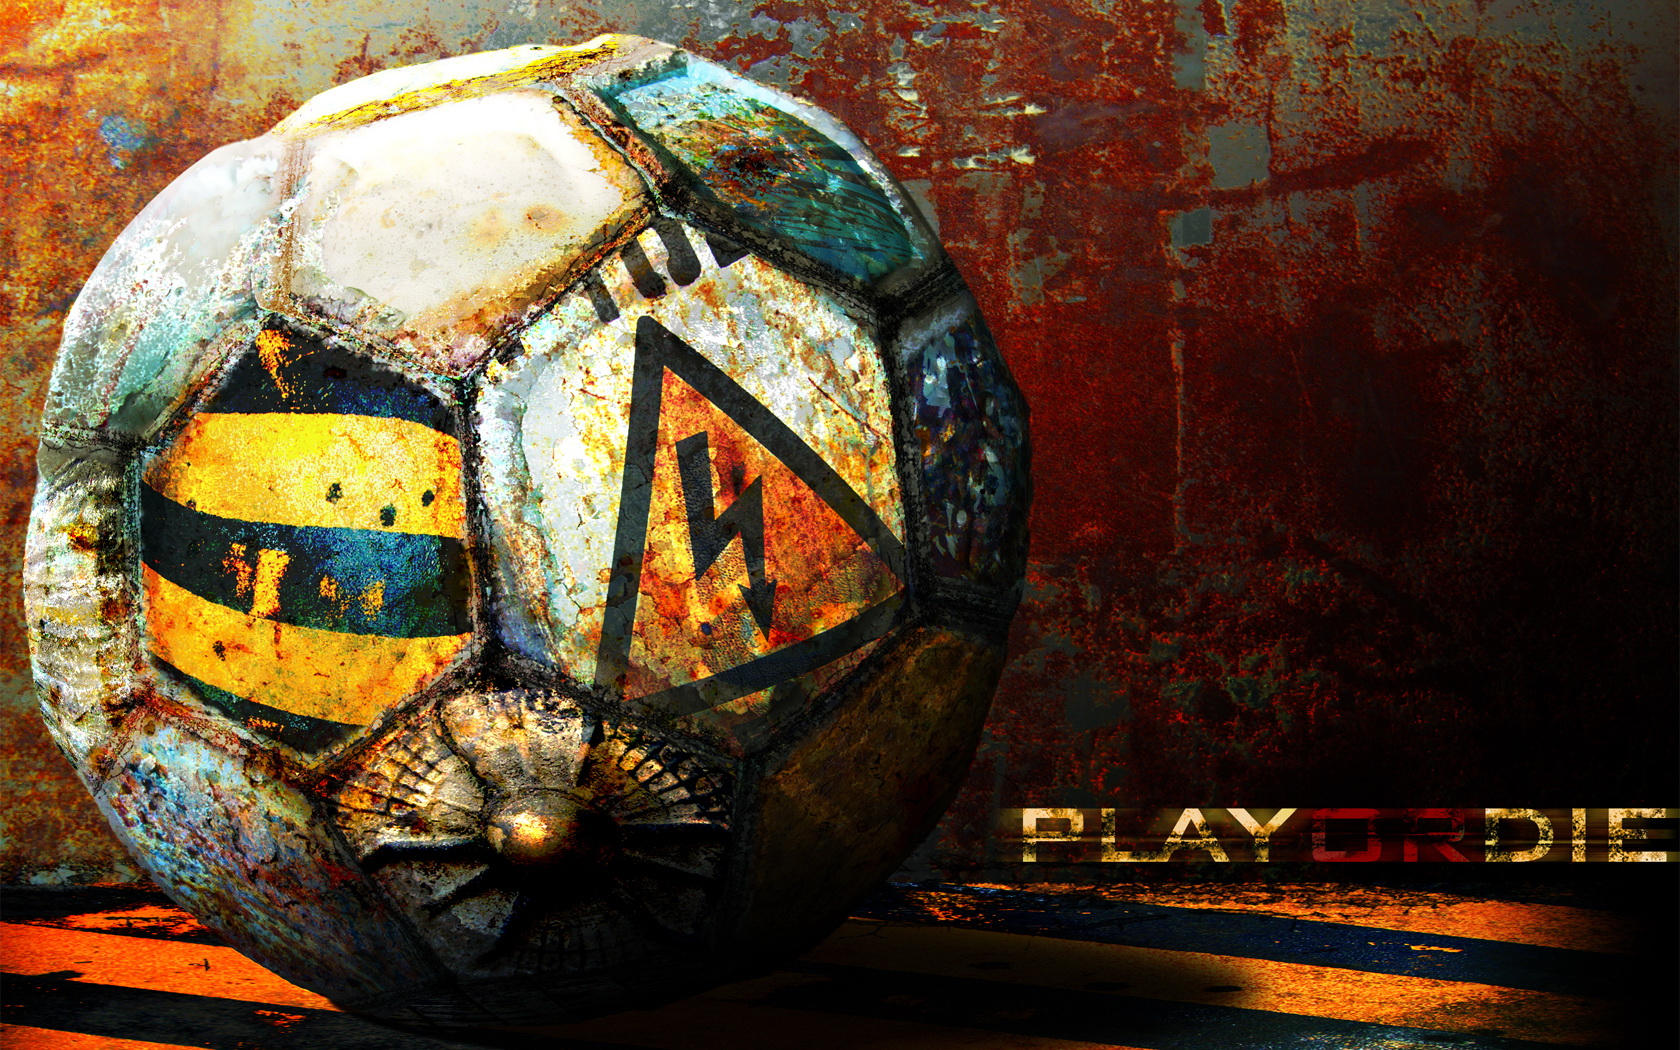 Soccer Wallpaper and Background Image | 1680x1050 | ID:78899